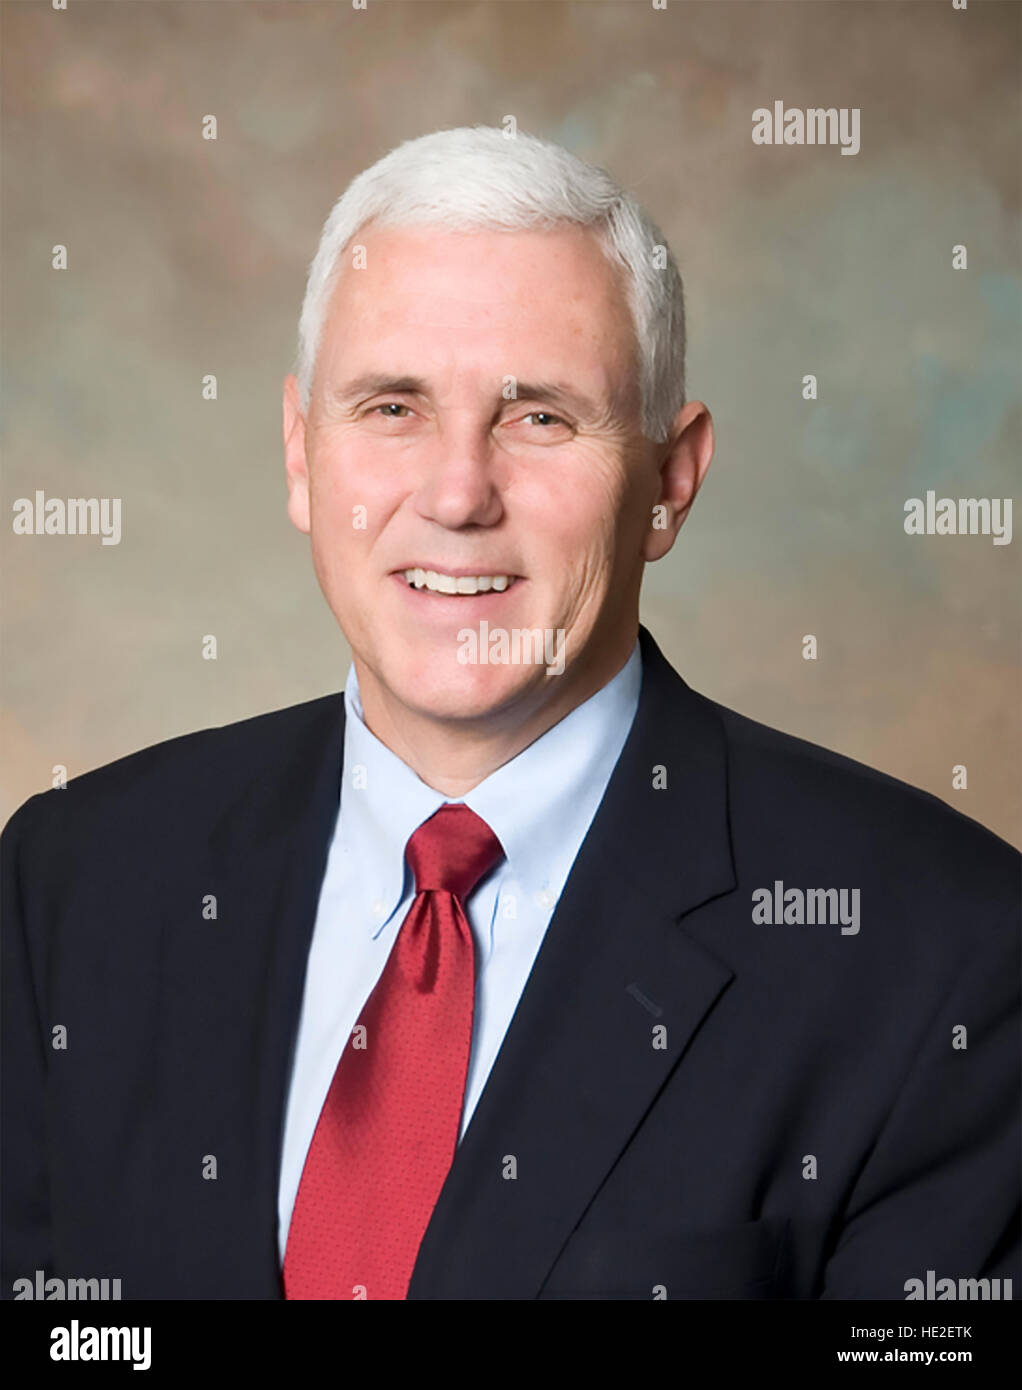 MIKE PENCE US Vice President-elect in 2015 - Stock Image